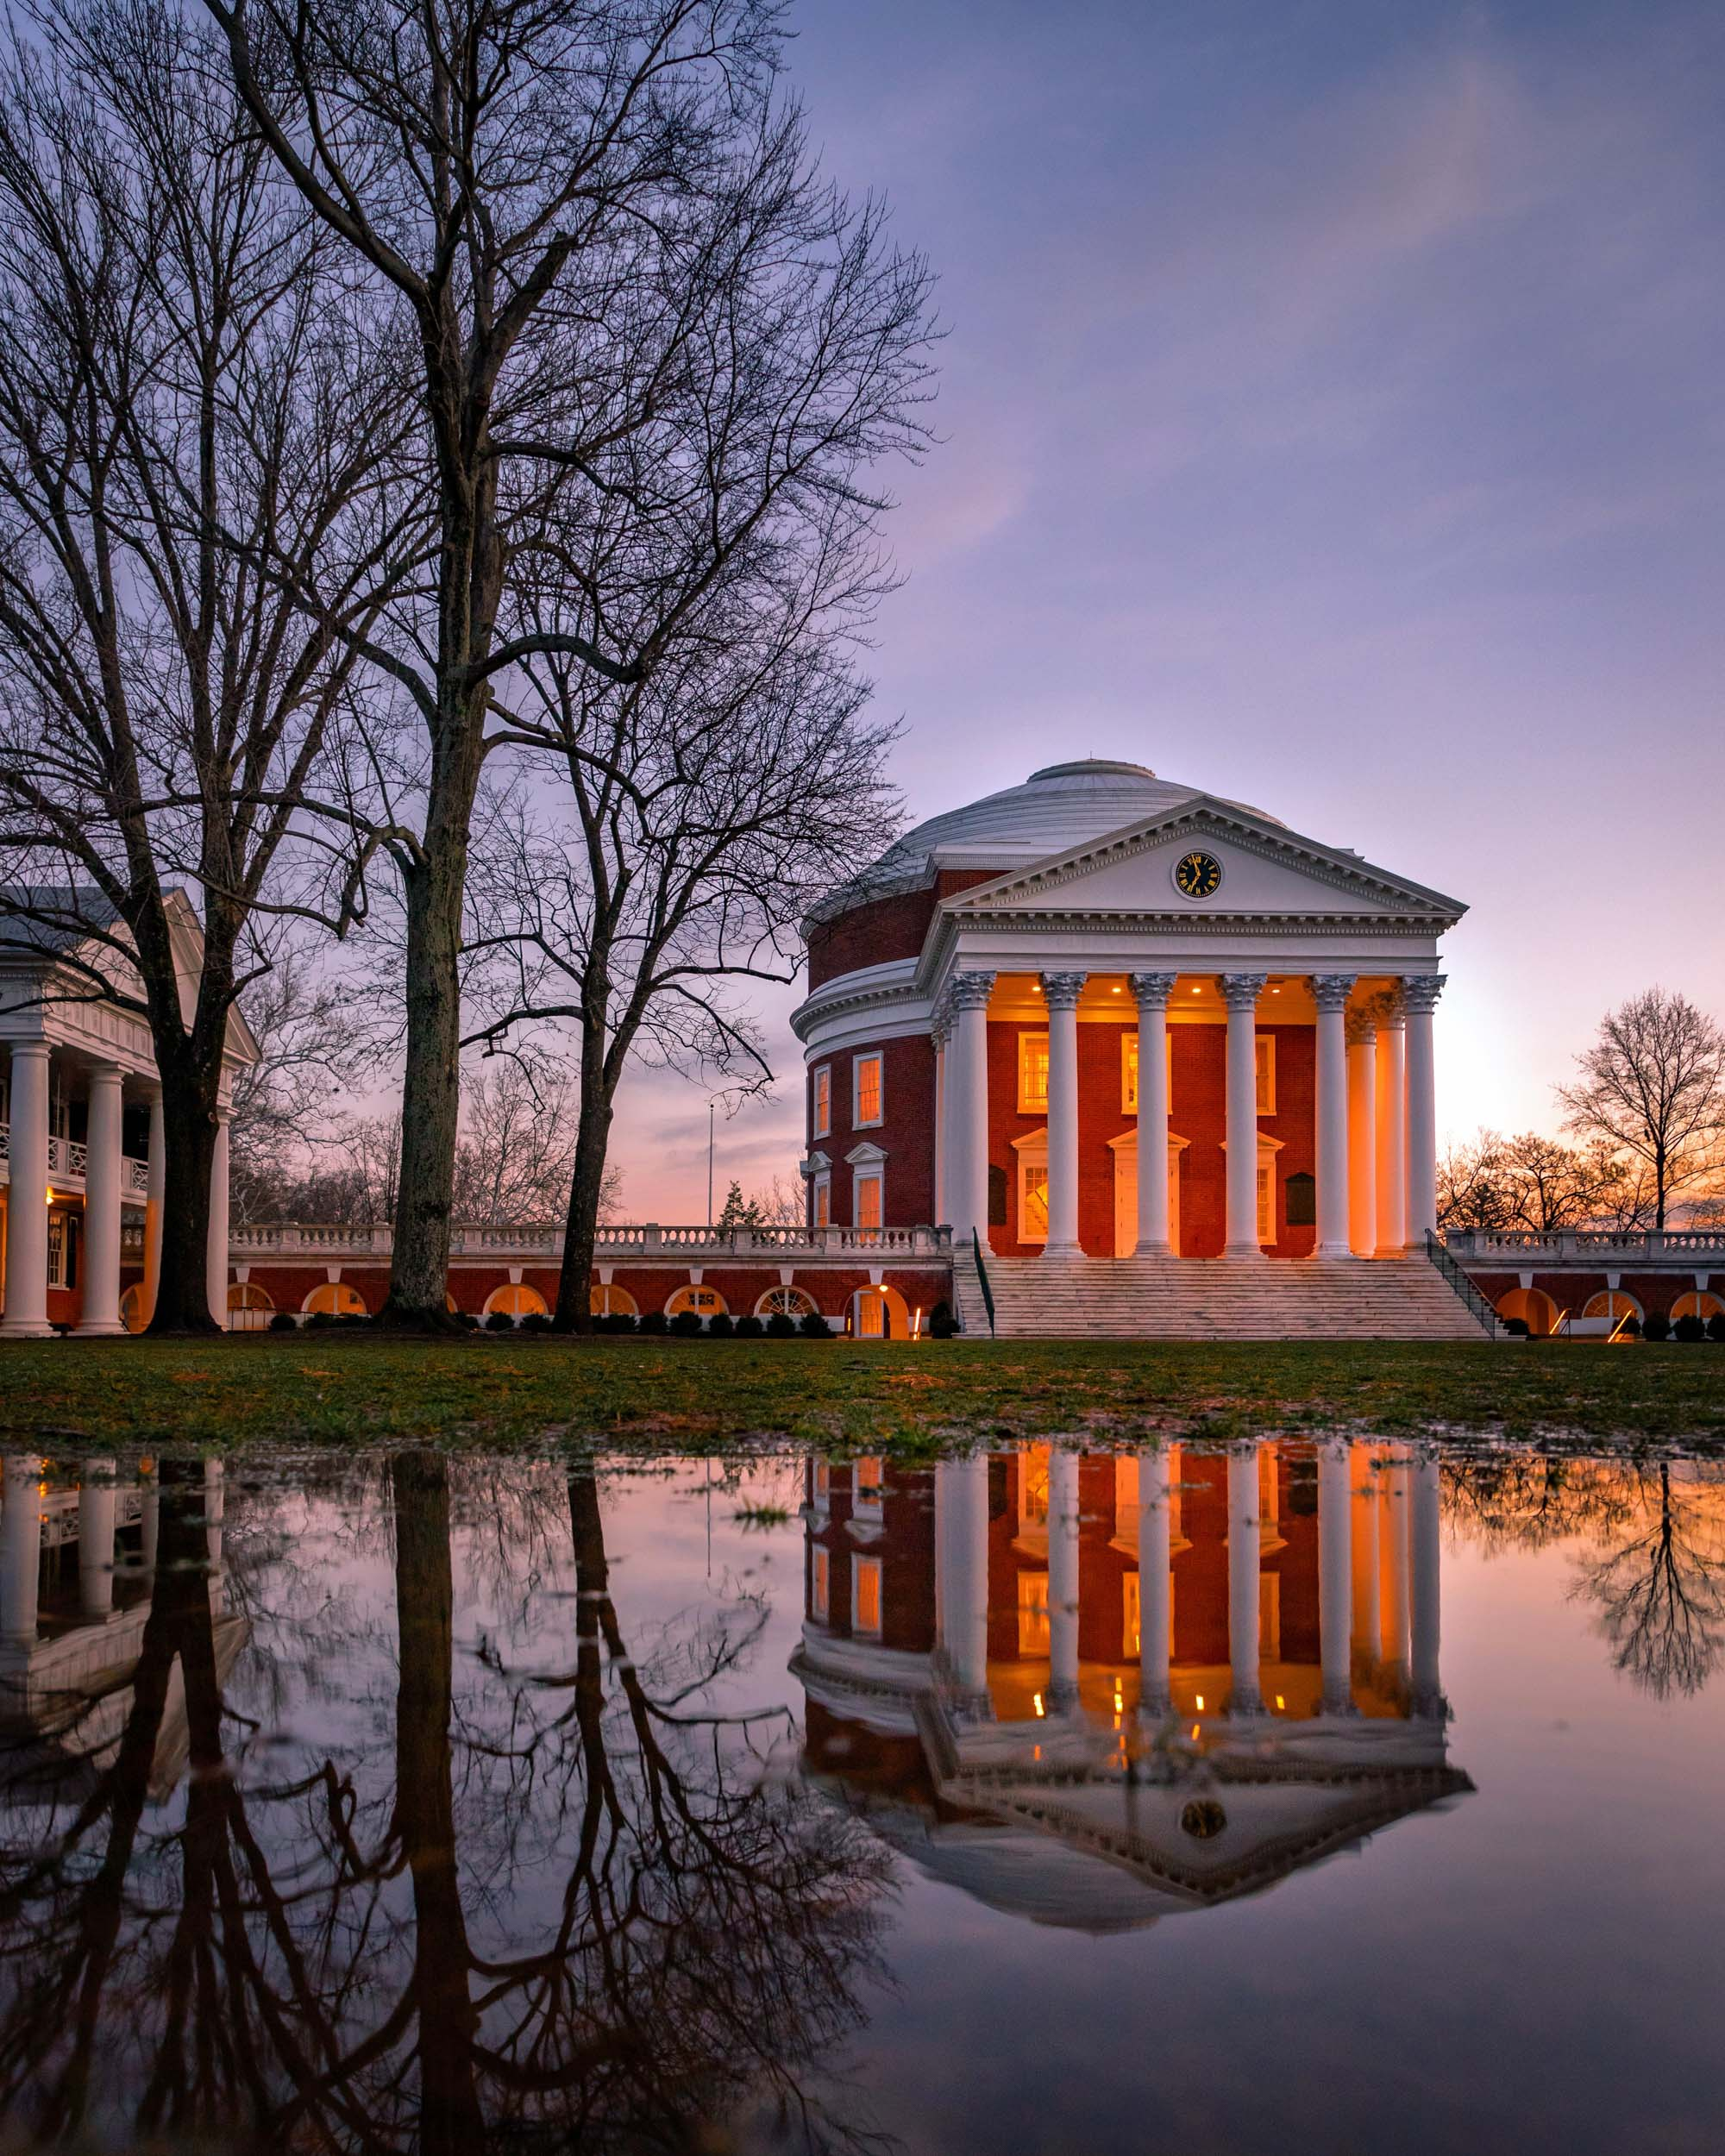 Crane is known for his unique perspectives of familiar UVA landmarks, such as this shot after a winter rain.